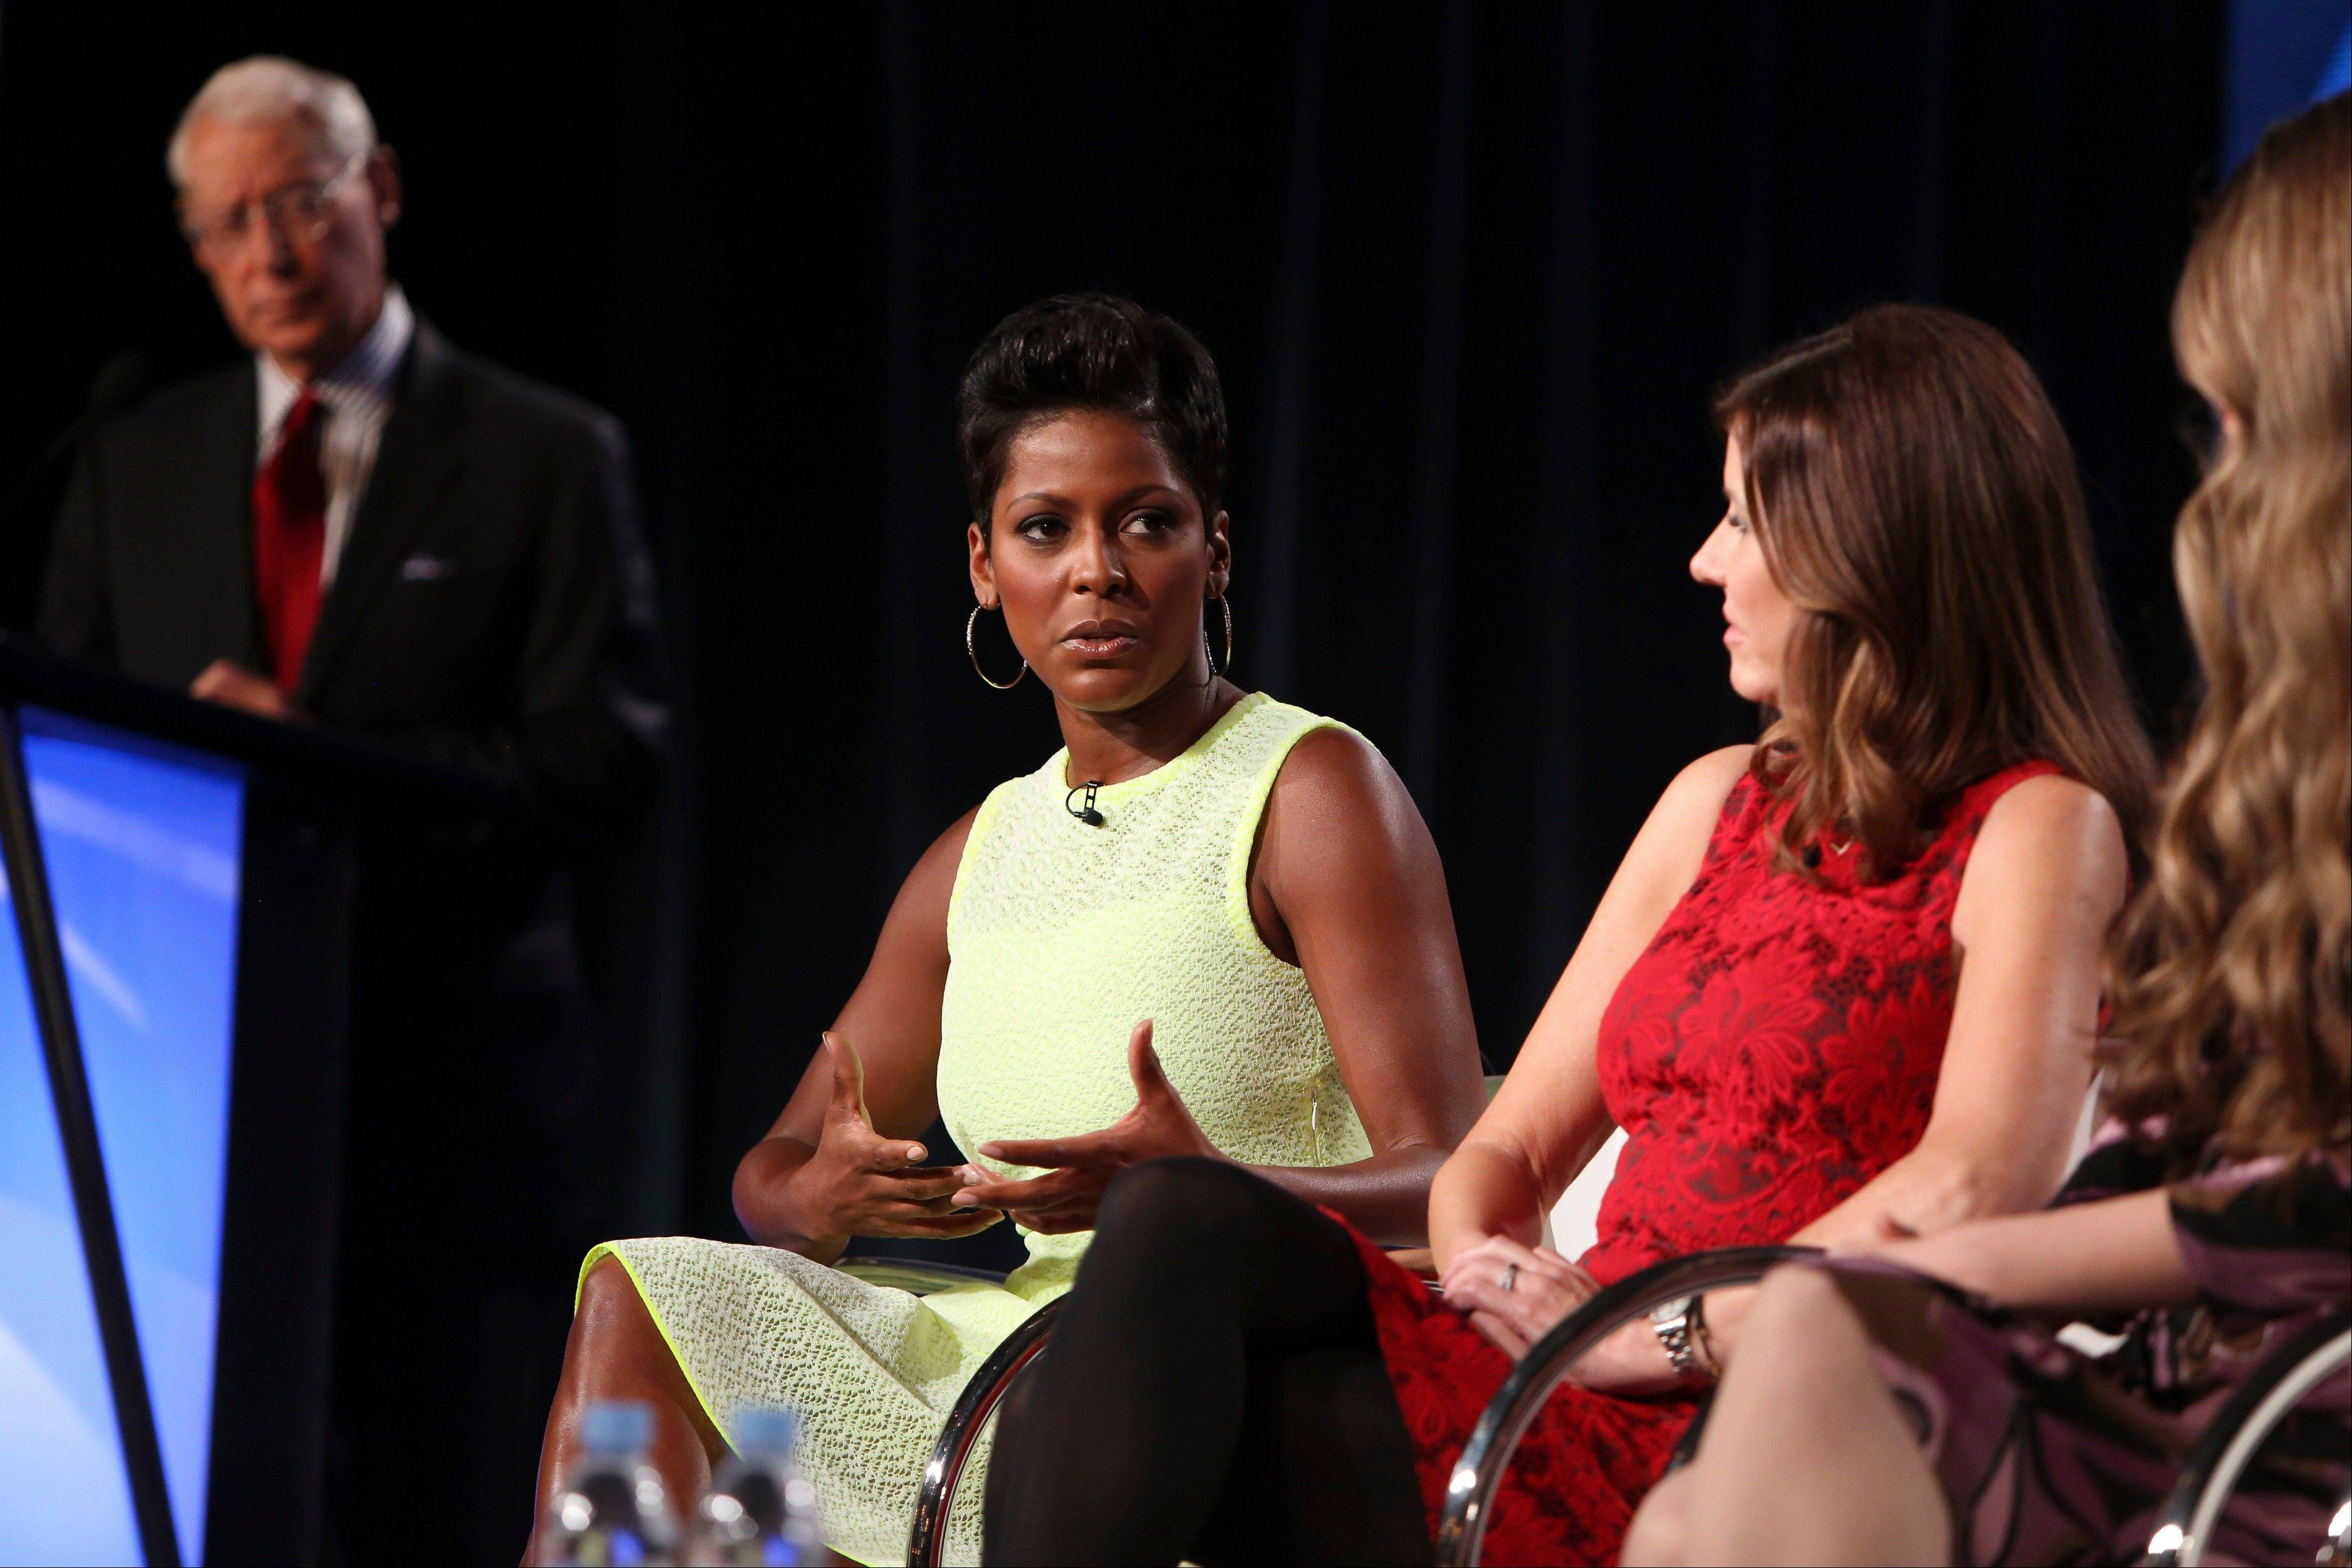 "Henry Schleiff, left, Group President; Tamron Hall, host of ""Deadline: Crime with Tamron Hall"": Sharon Scott, Executive Vice President of NBC News' Peacock Productions; and Alicia Kozakiewica, Internet Safety & Awareness Advocate and Founder of the Alicia Project, speak during the Discovery Communications TCA Panel Thursday at The Langham Hotel in Pasadena, Calif. NBC's Hall says her work on the series ""Deadline Crime"" is partly motivated by the feeling that she failed her sister, who was murdered in 2004."